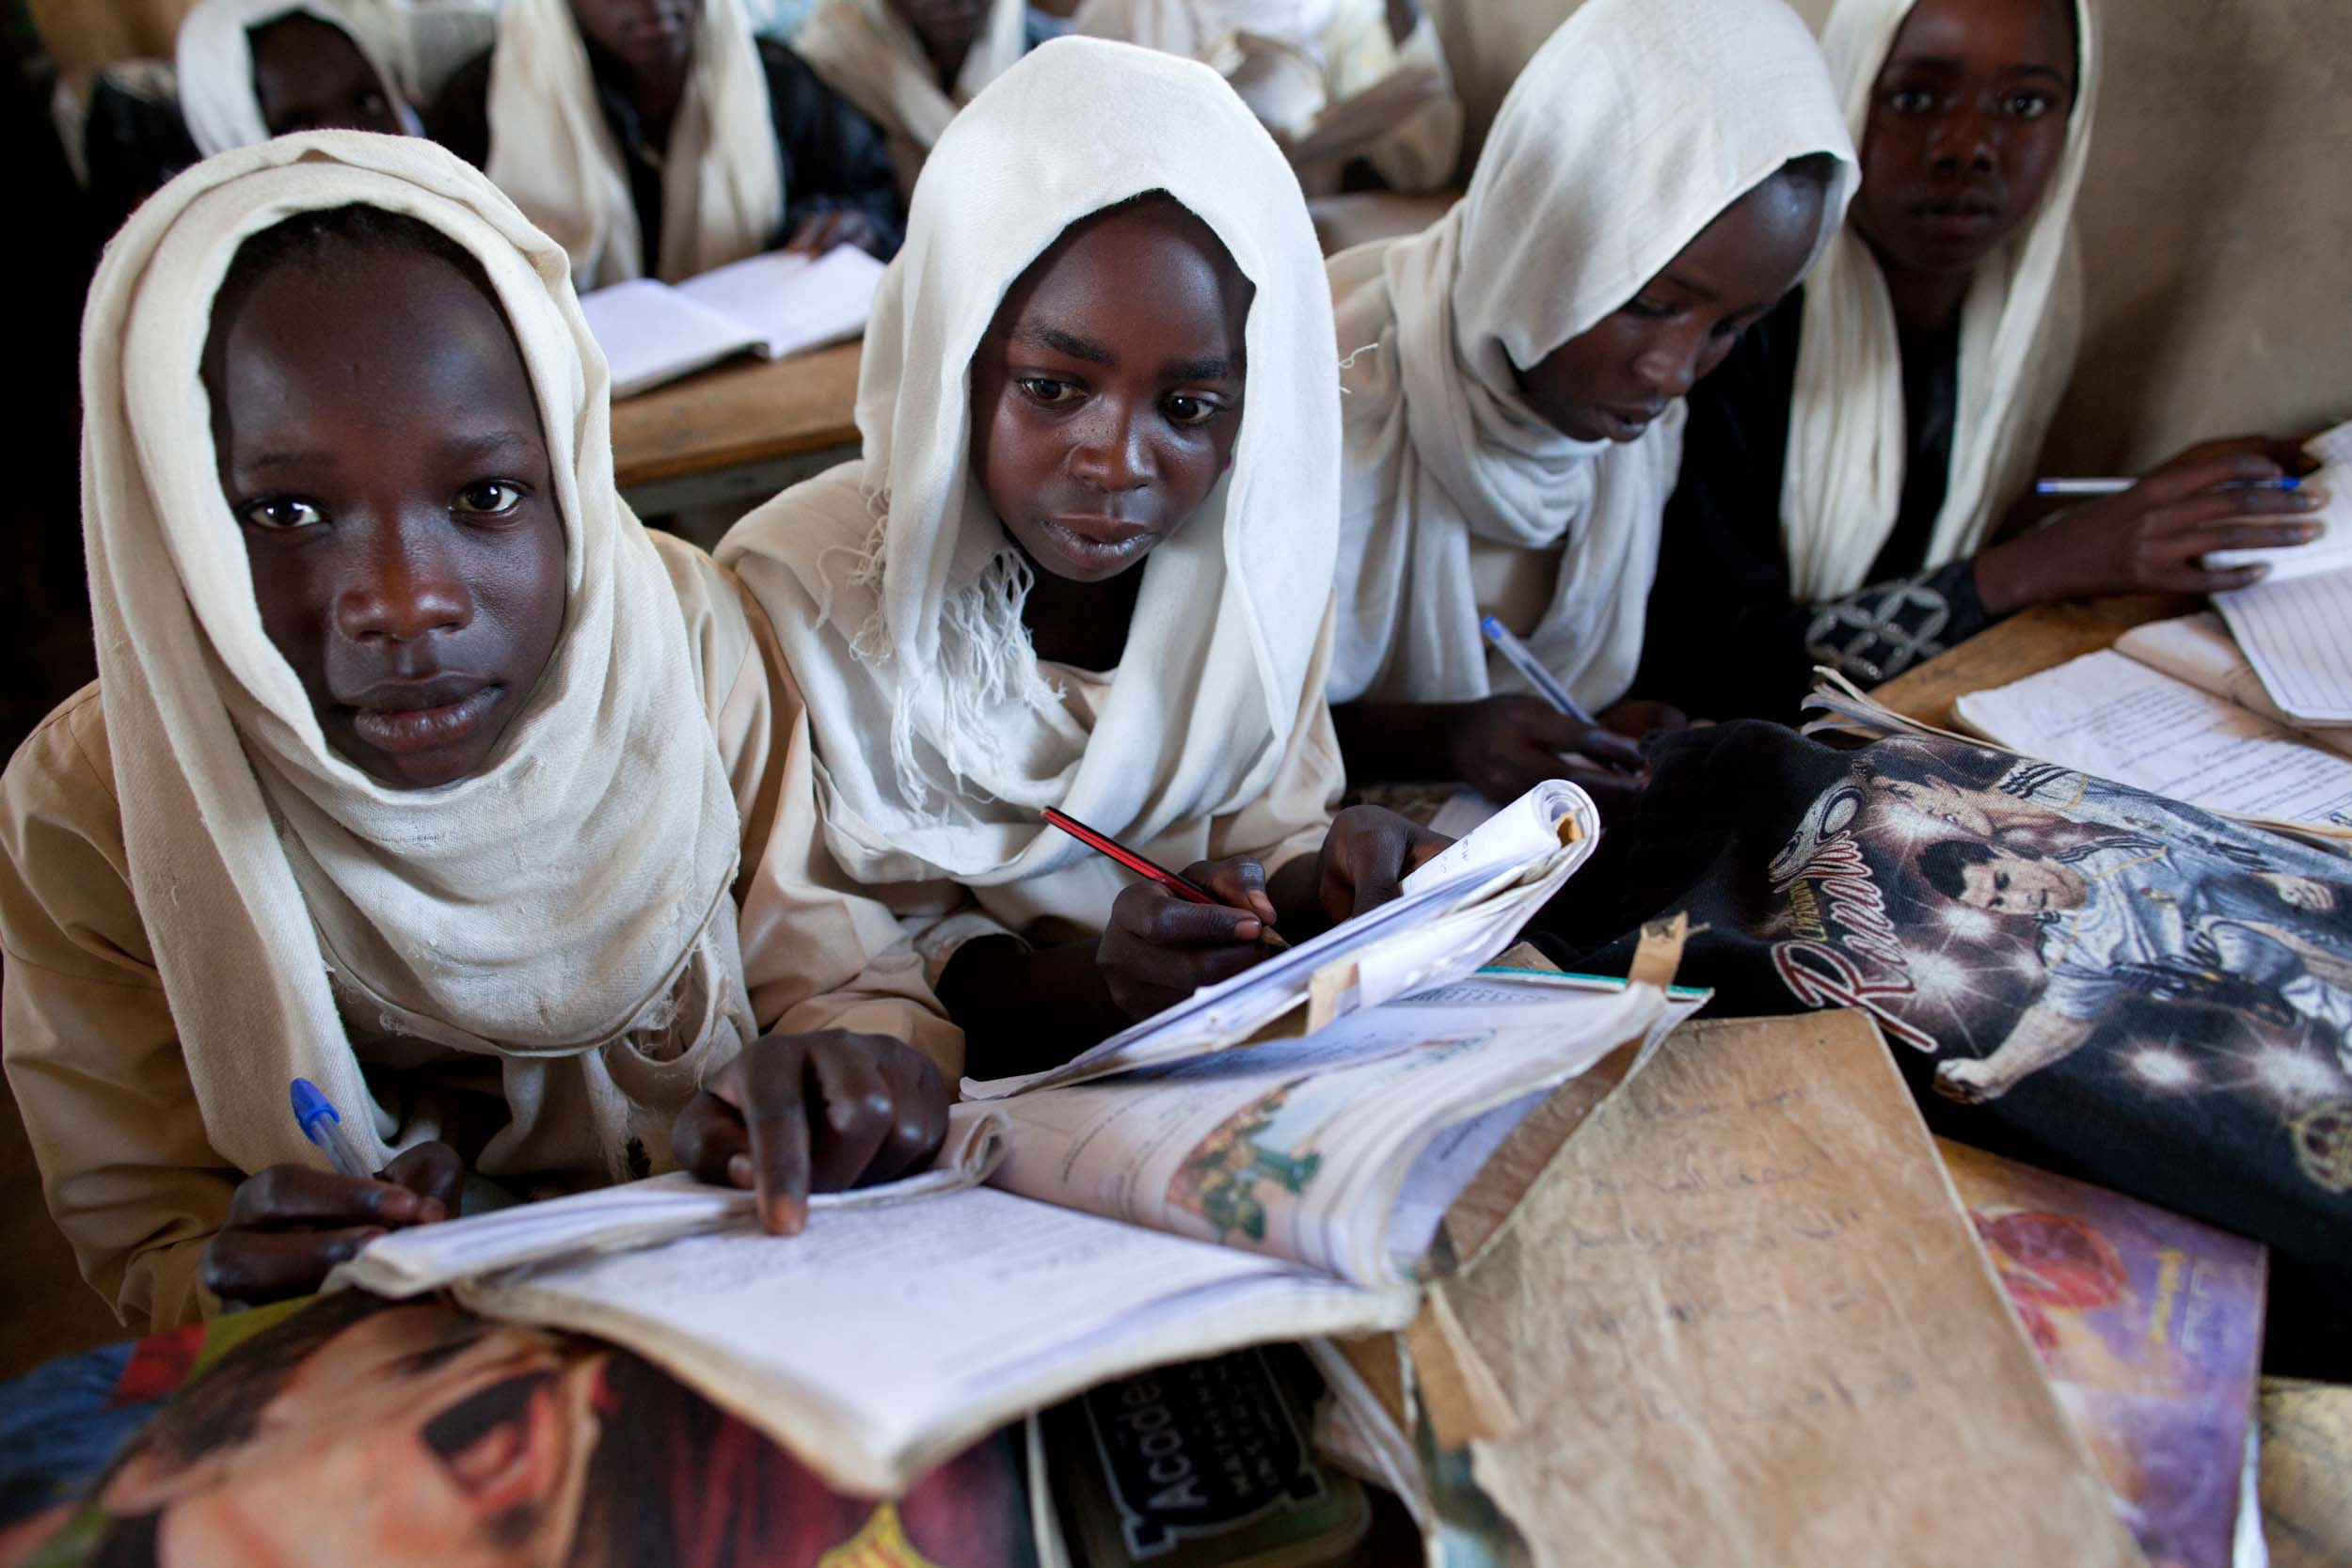 15 million primary school age girls are out of school worldwide